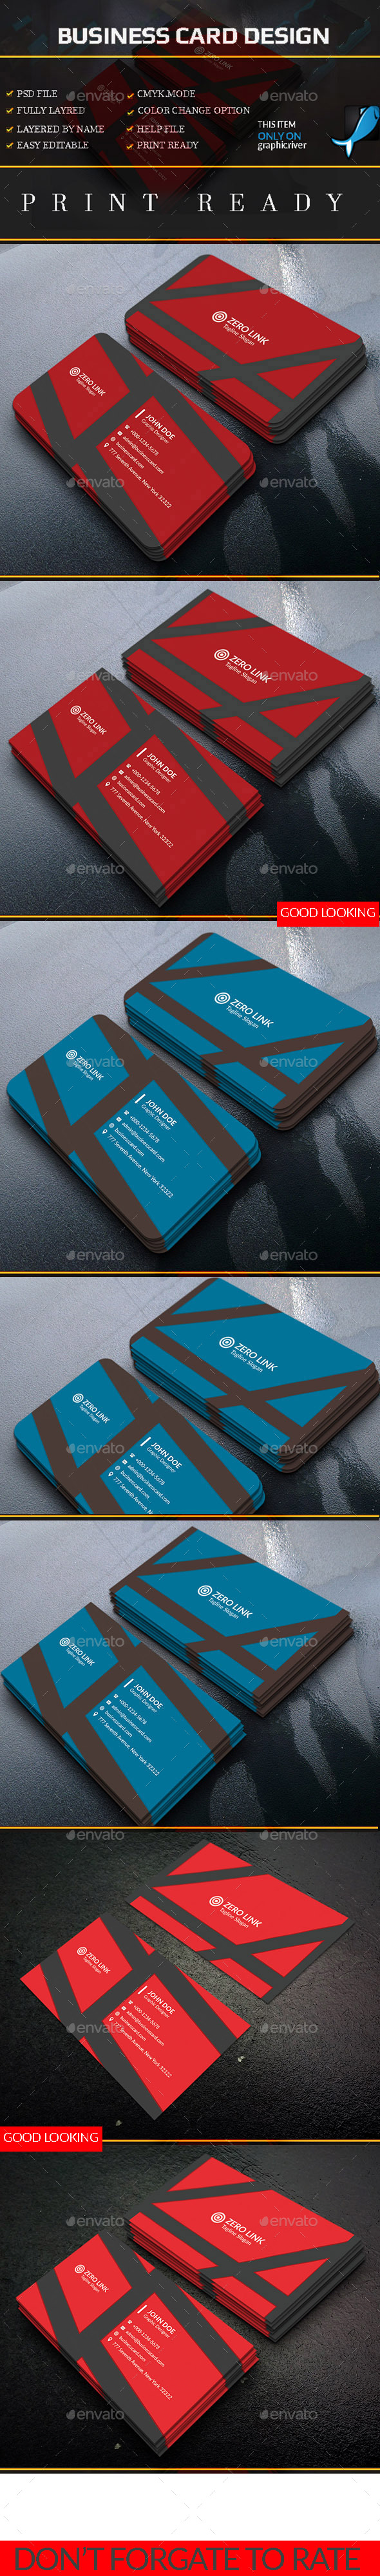 Smart & System Business Card  - Creative Business Cards